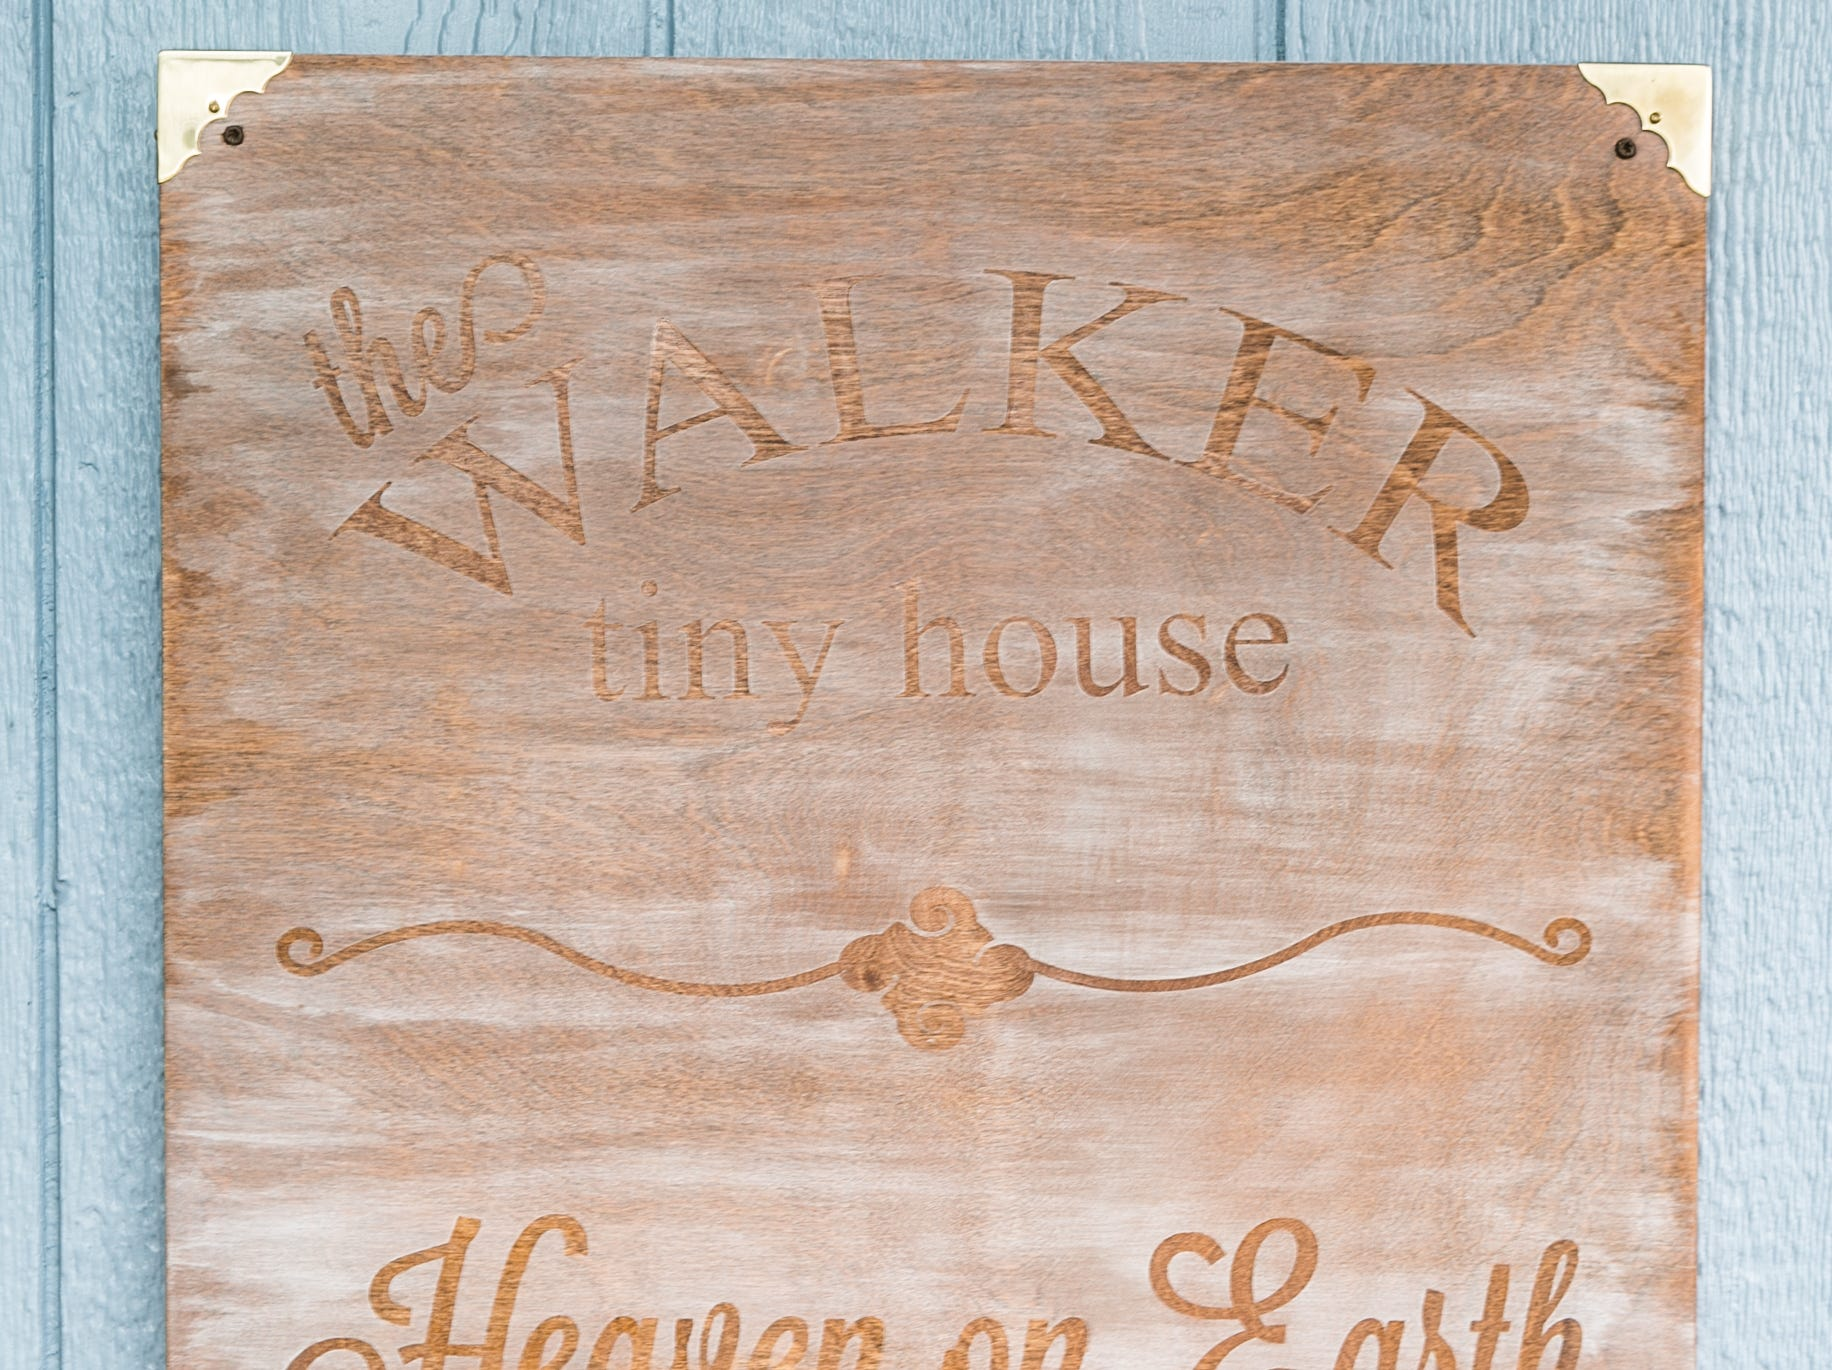 """: A plaque is inscribed with the donors' name and """"Heaven on Earth."""" Eden Village home donated by Mike and Mary Walker taken on September 4th, 2018."""